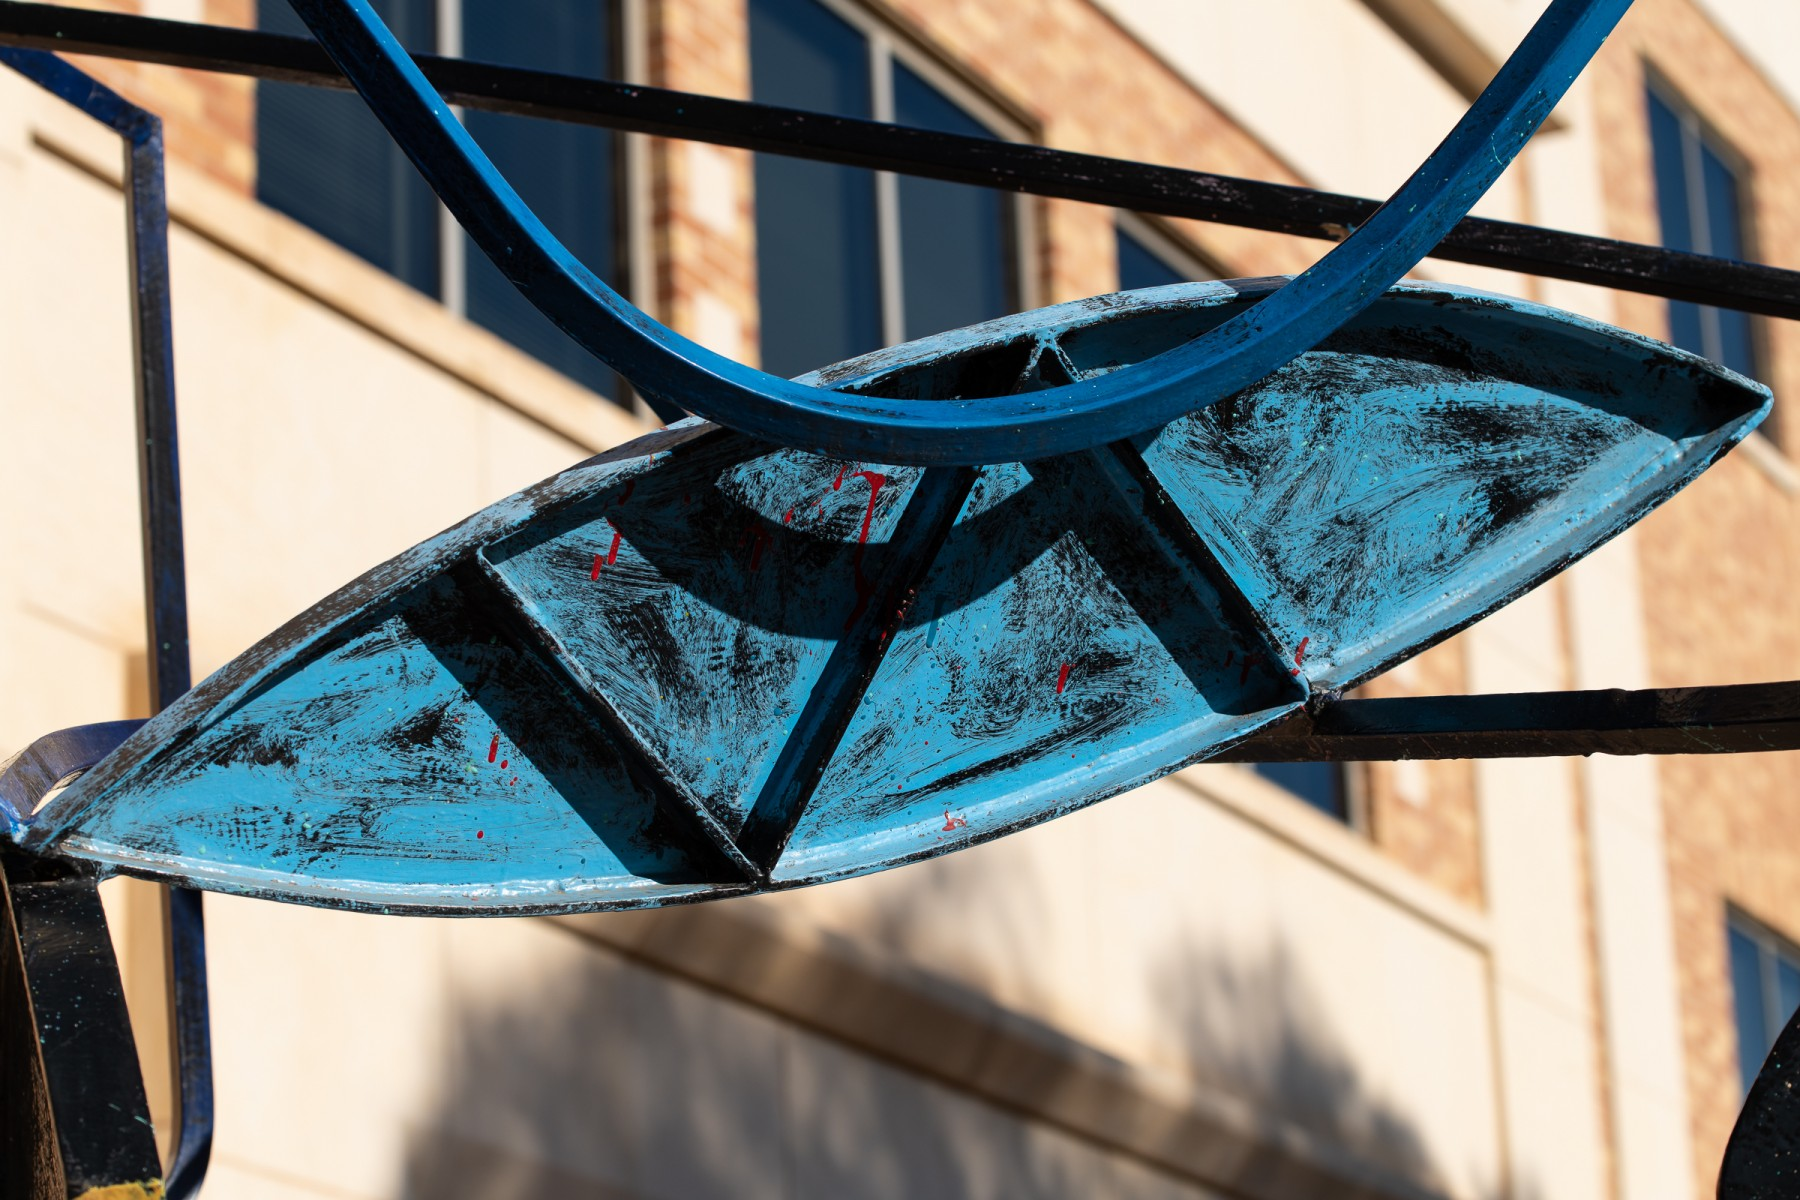 A detail of the sculpture that is almost almond shaped which streches across the whole image plane, a zigzag cuts across the shape which is painted blue.